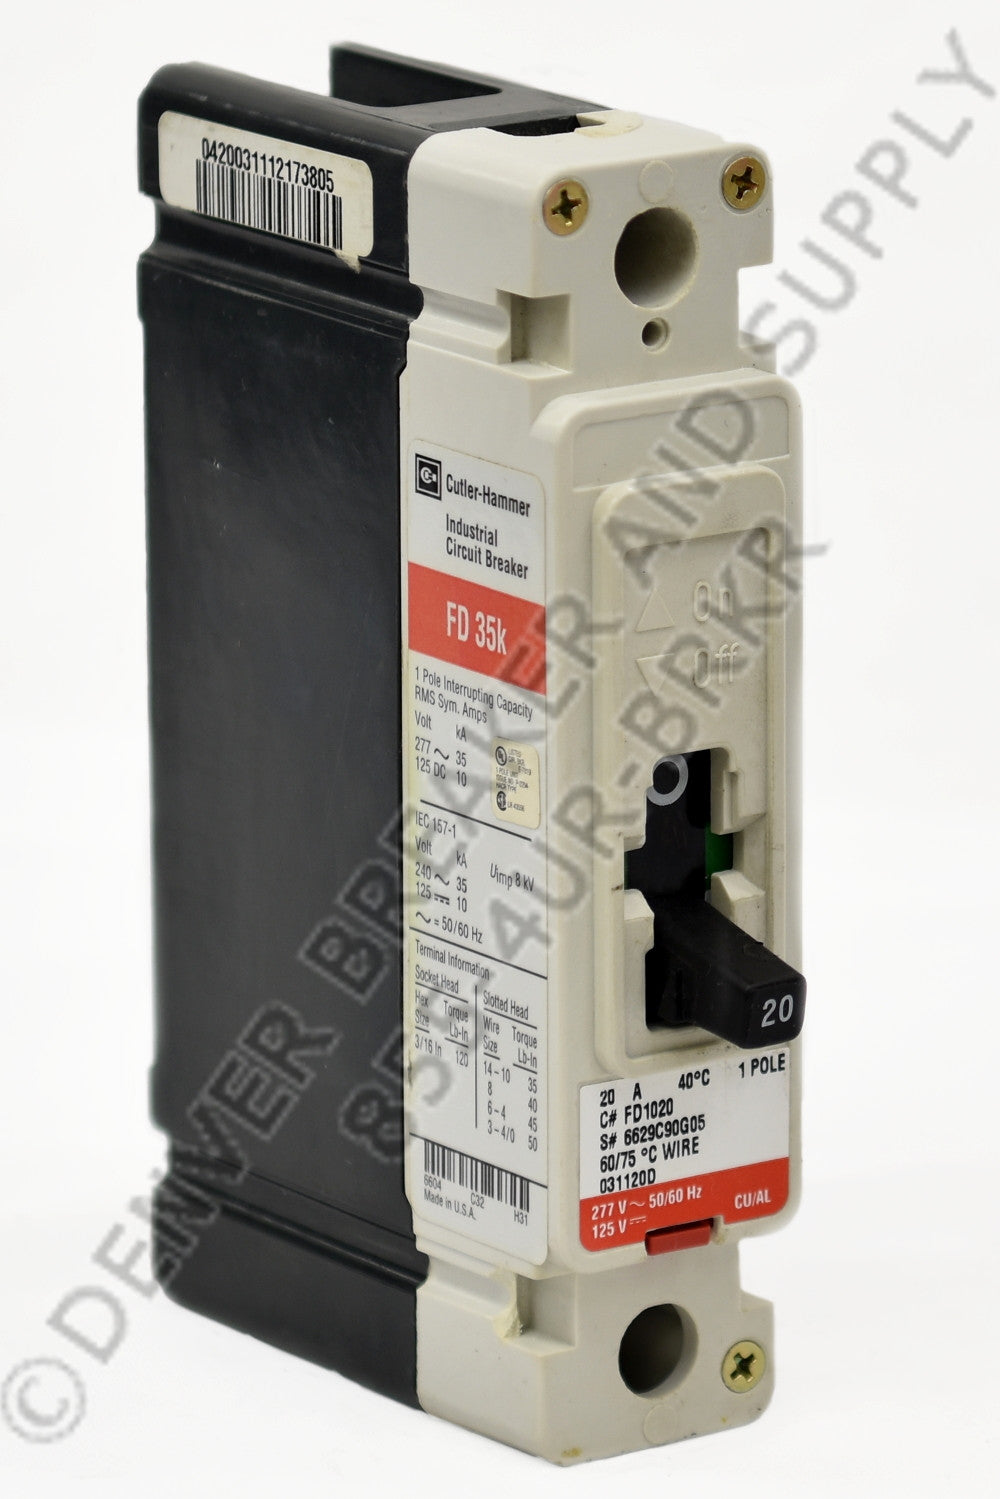 Cutler Hammer FD1025 Circuit Breakers